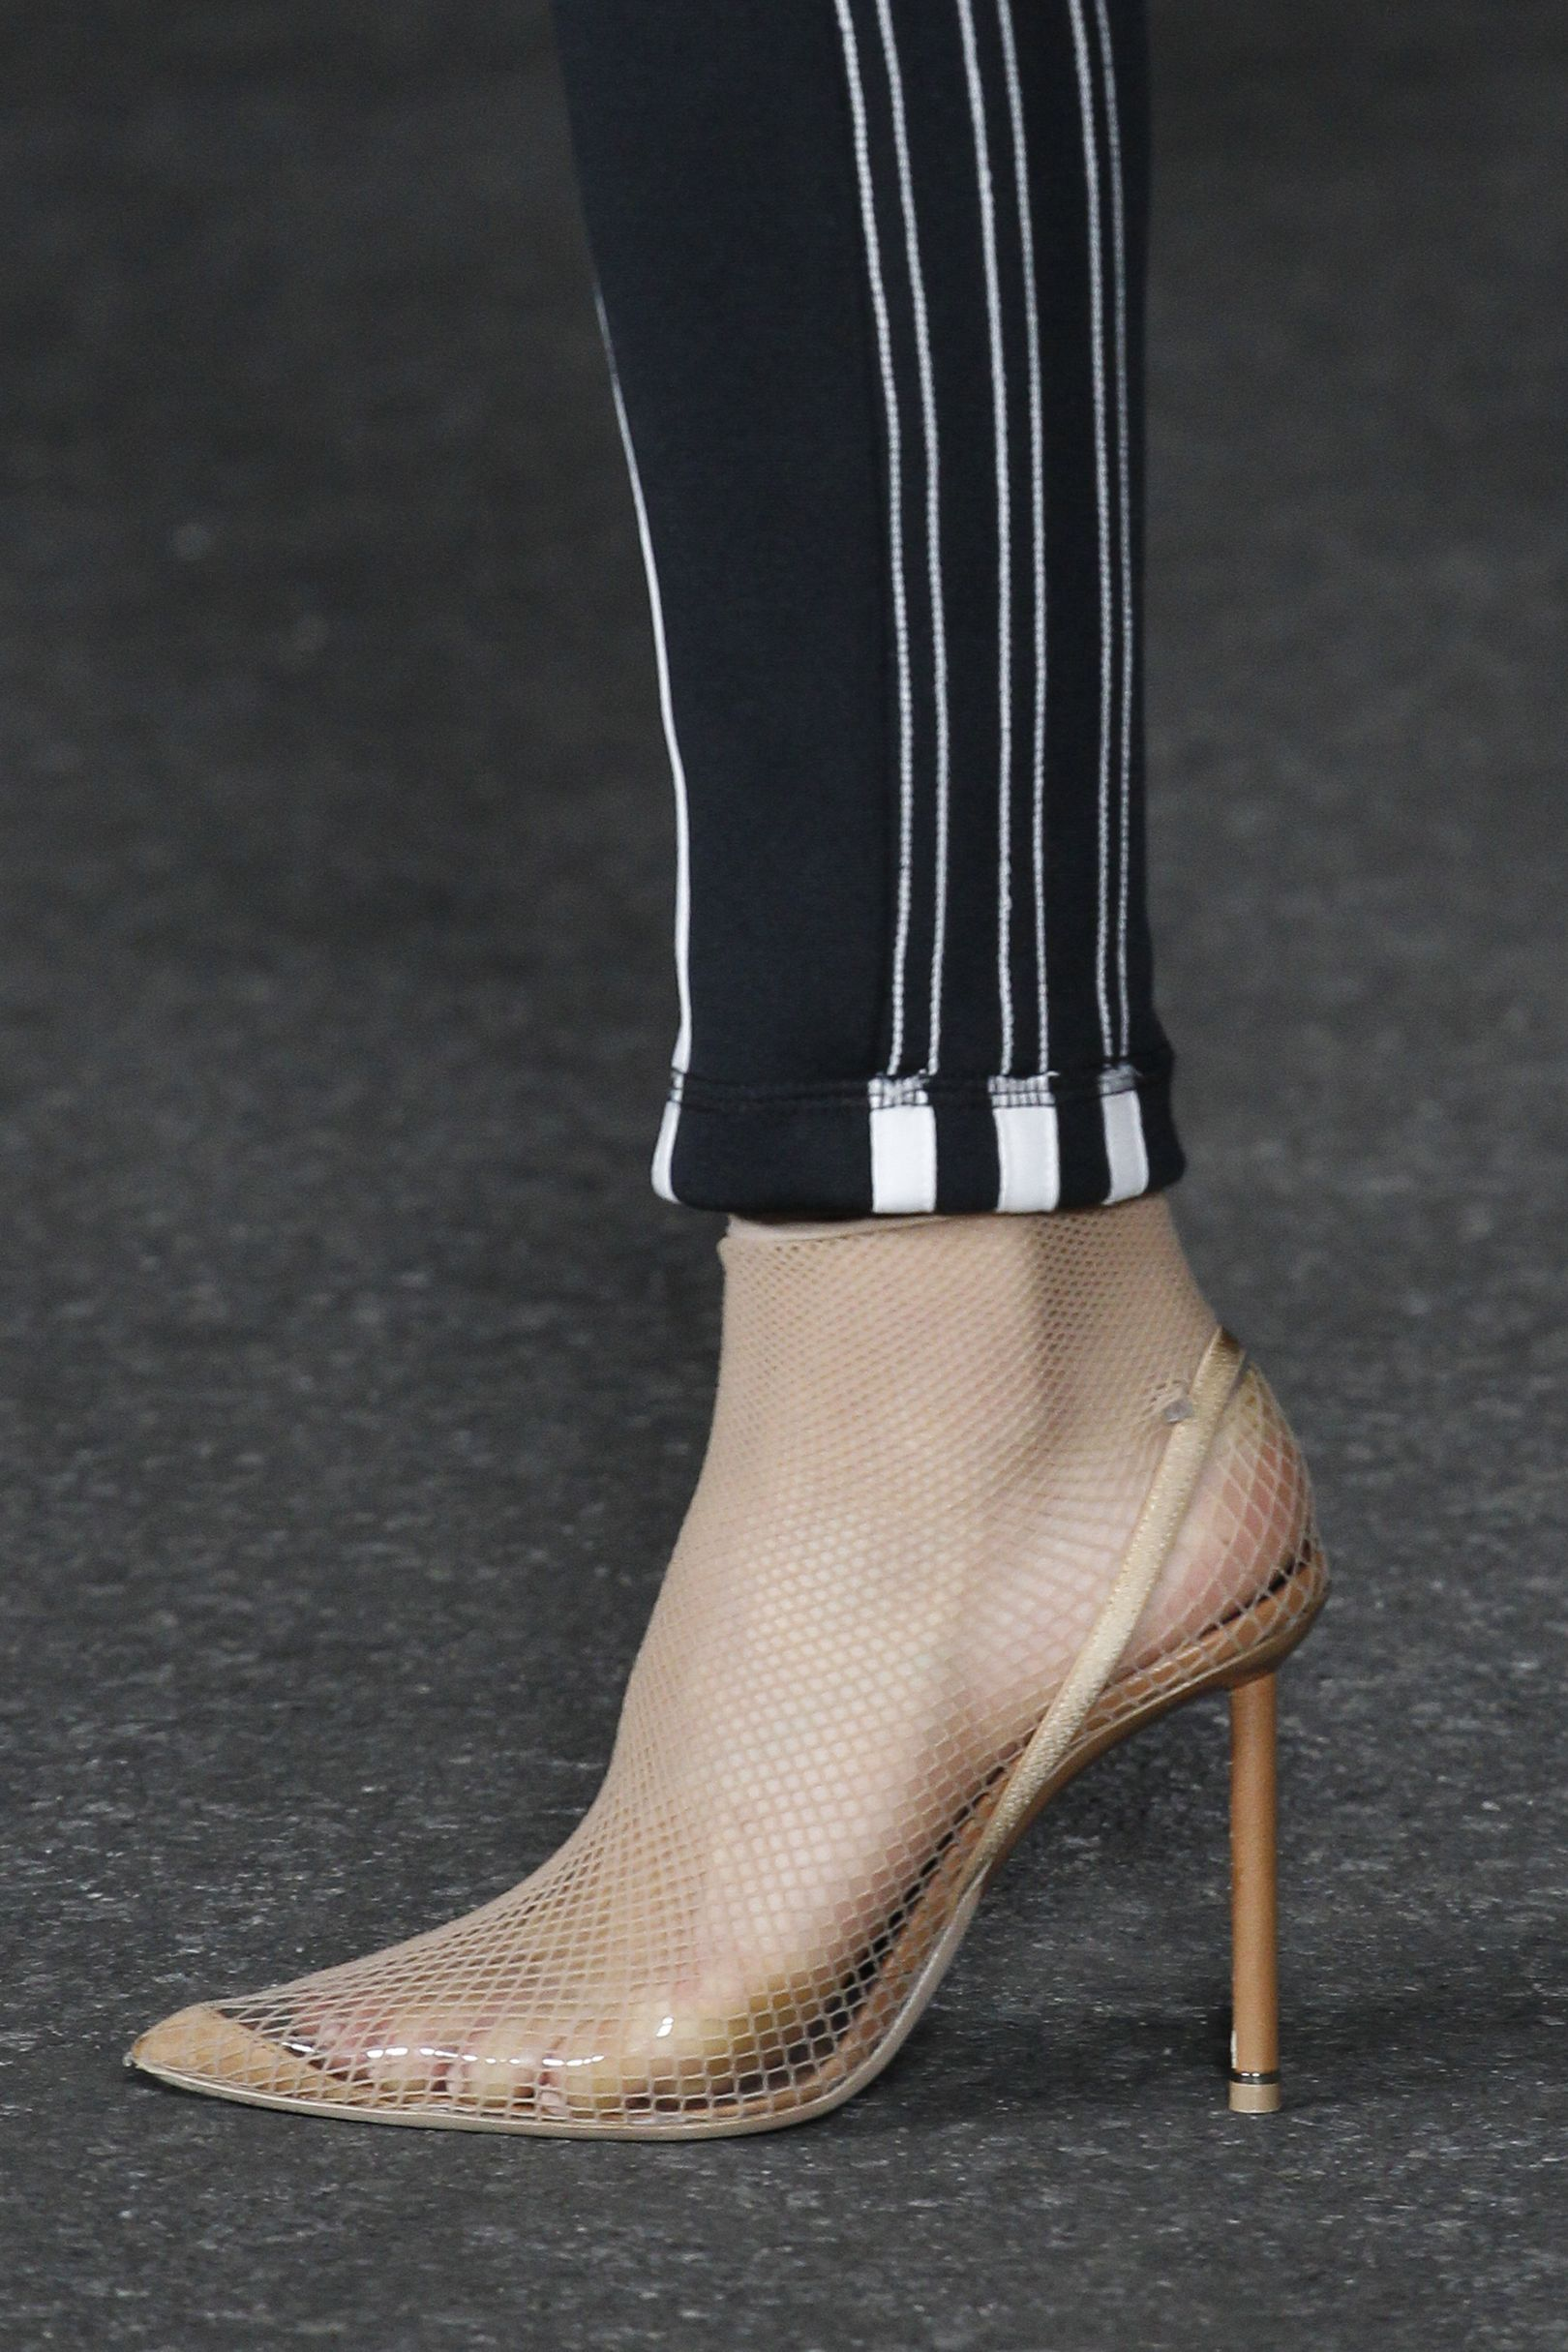 Fashion spring shoes advise to wear for everyday in 2019